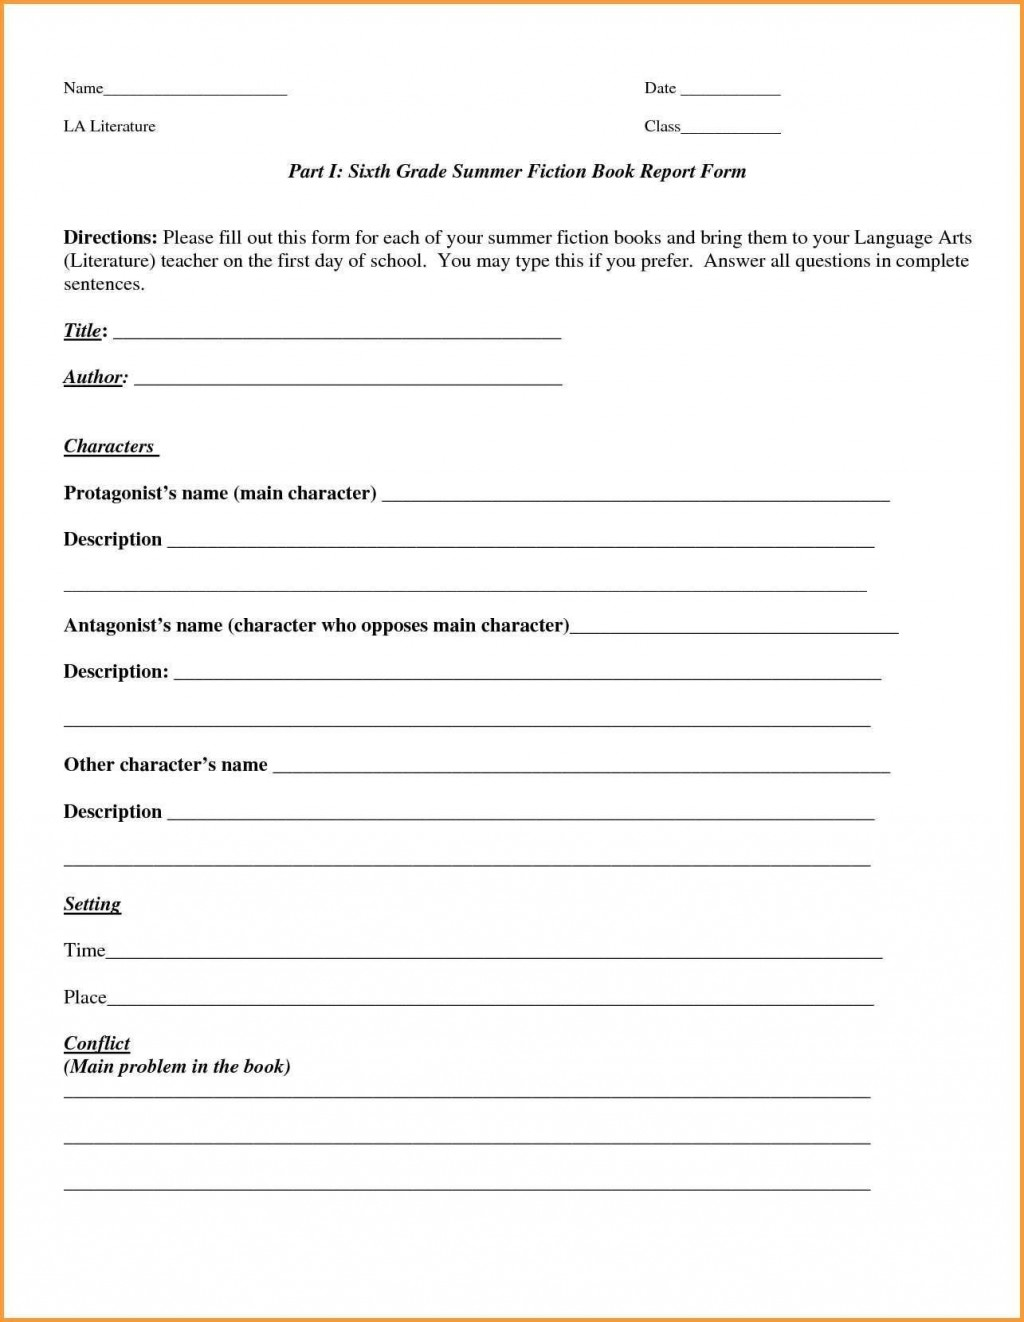 001 Breathtaking Blank Book Report Form 6th Grade Inspiration  Free Printable TemplateLarge